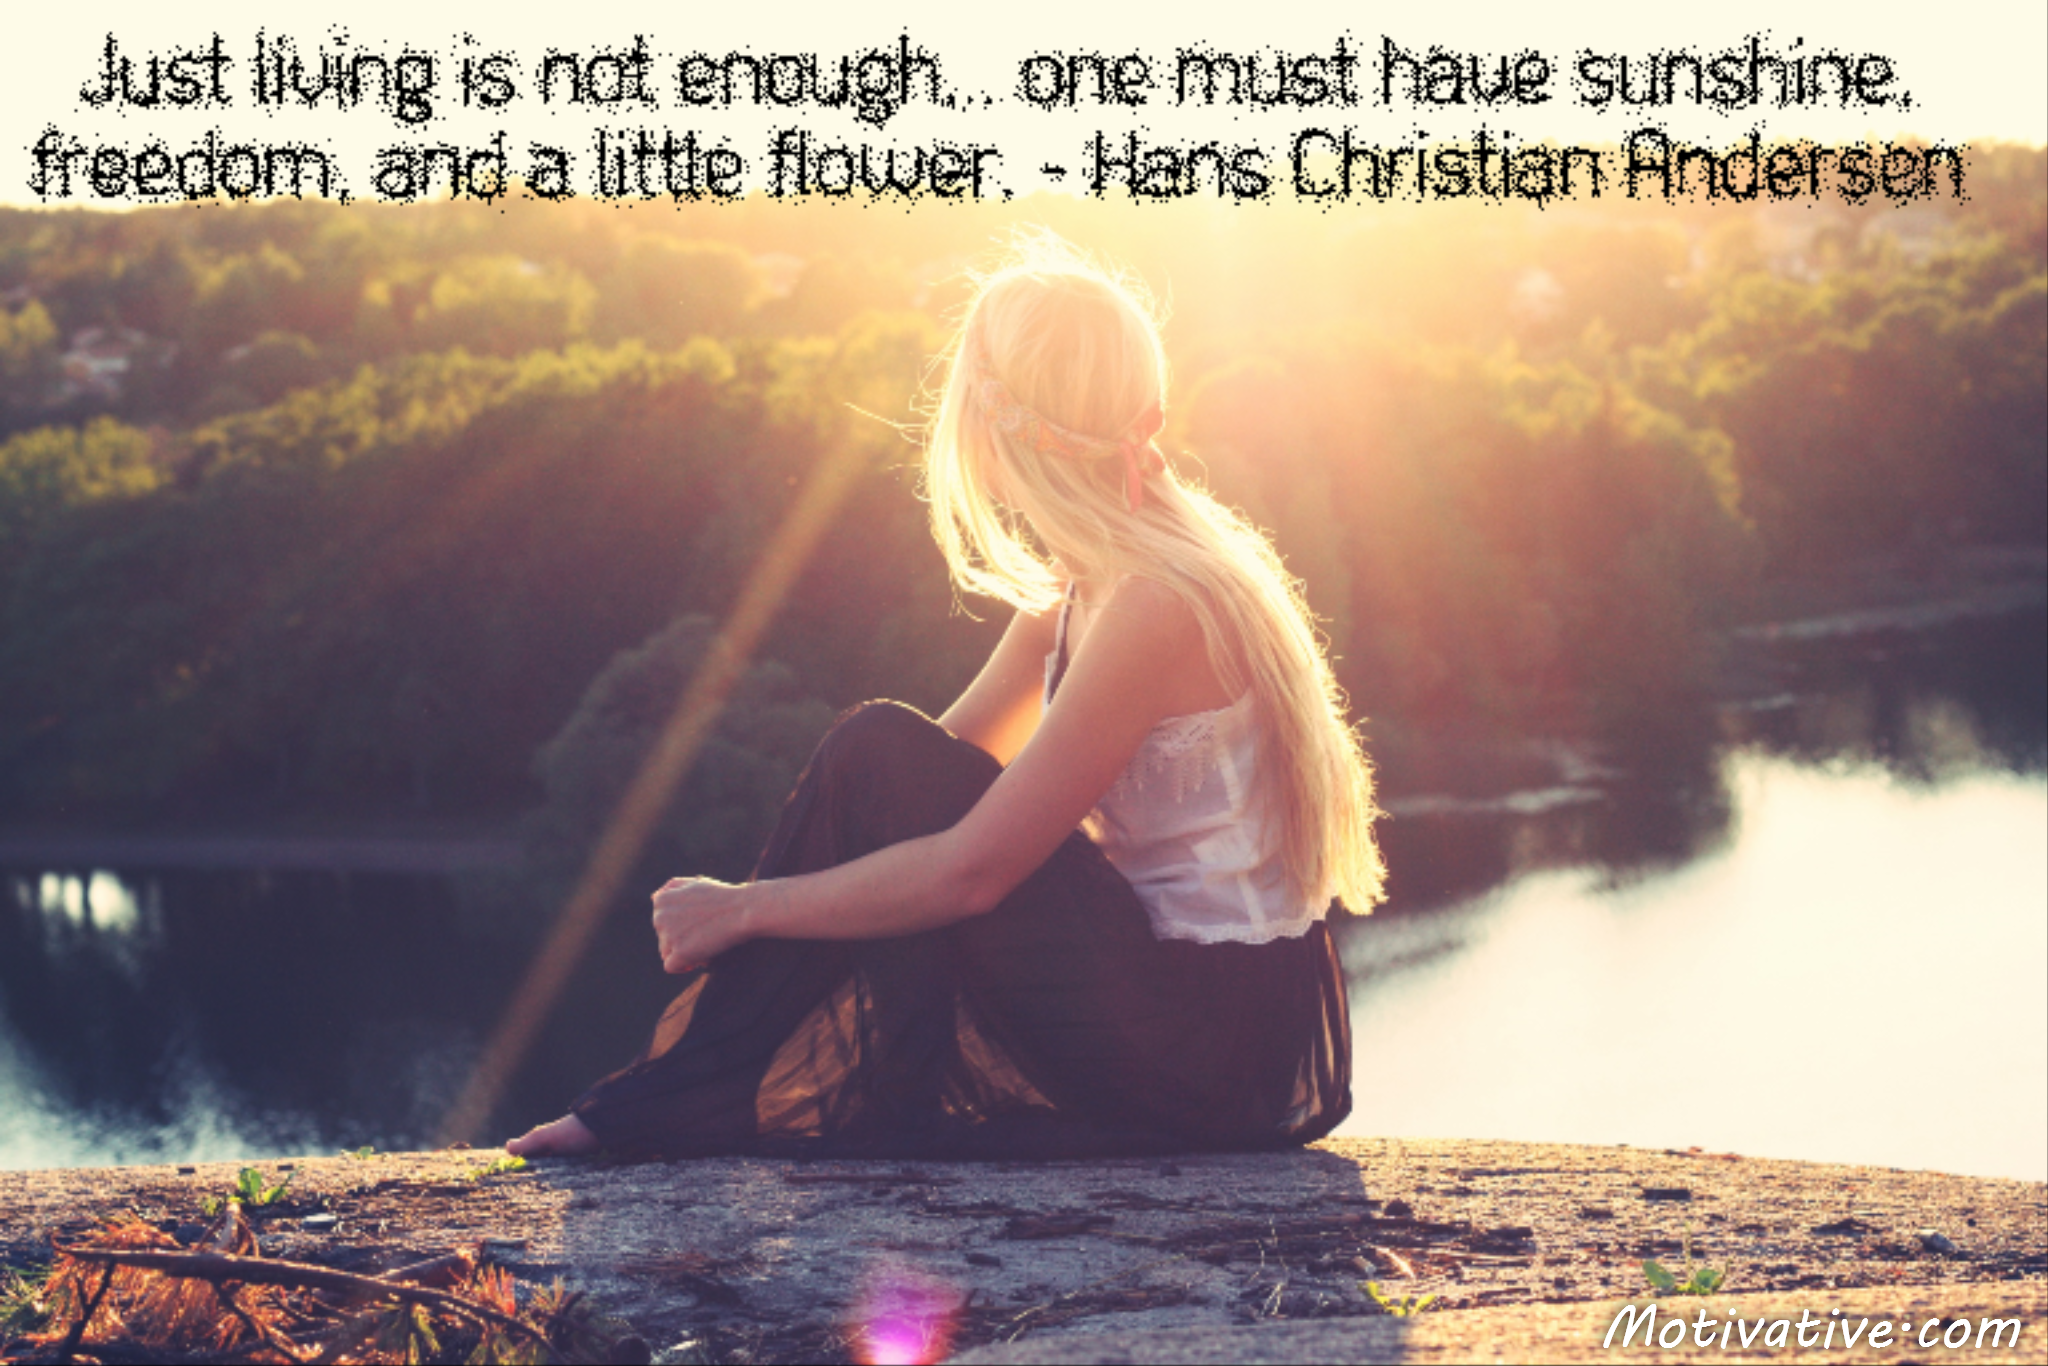 Just living is not enough… one must have sunshine, freedom, and a little flower. – Hans Christian Andersen